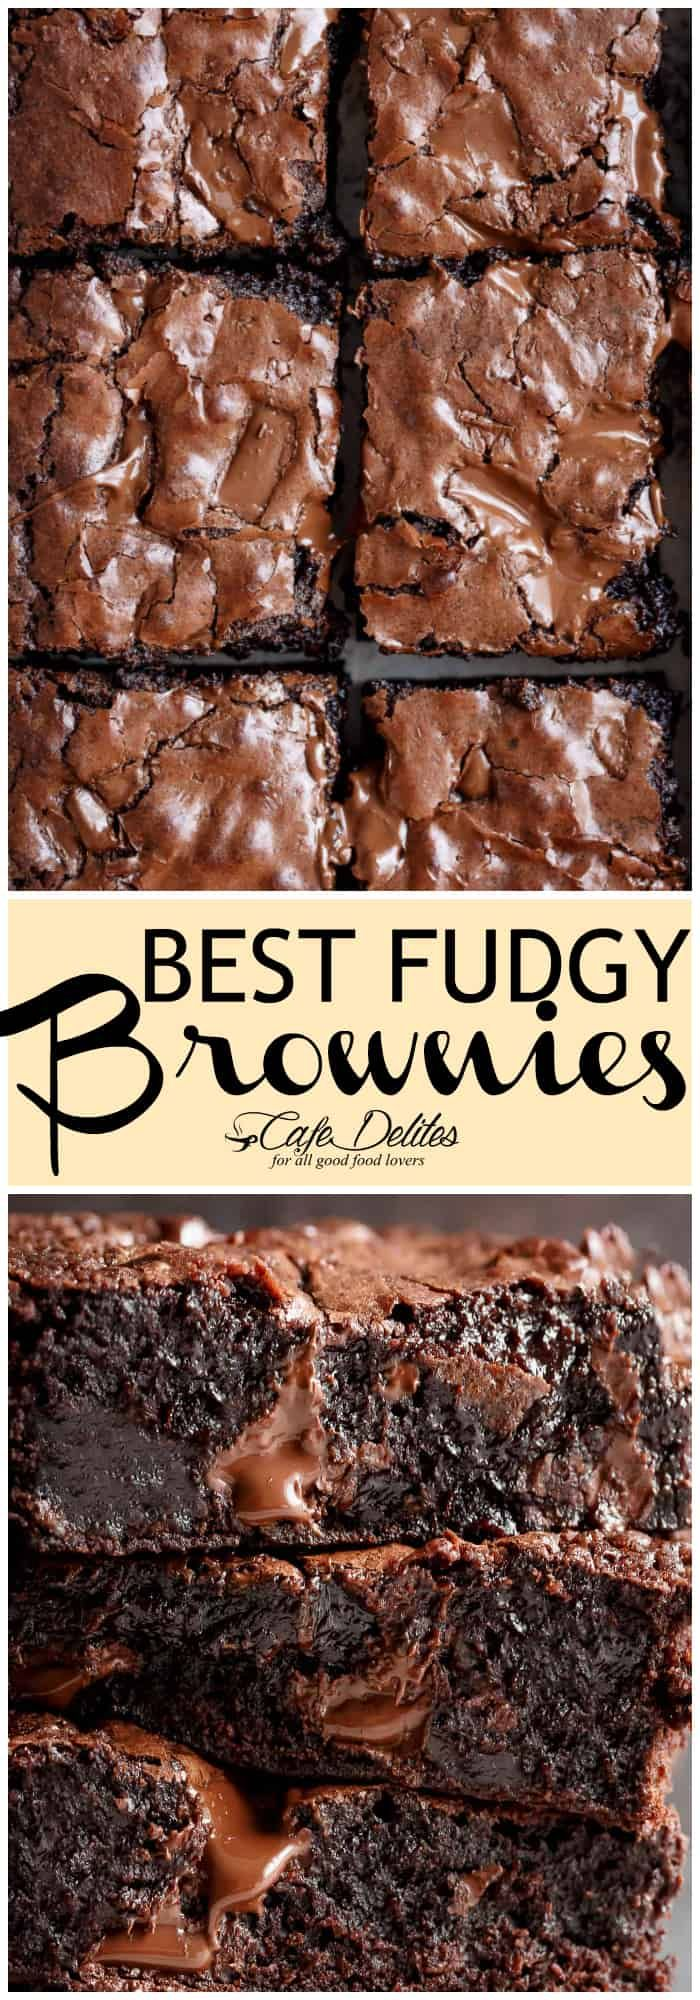 Worlds Best Fudgiest Brownies live up to their name! Perfect crisp crackly top, superfudgy centre, chewy and gooey in all the right places with melted chunks of chocolate! PLUS! Each ingredient comes measured AND weighed FOR YOU! Warning: Not for the faint-hearted. These brownies pack a serious chocolate punch!